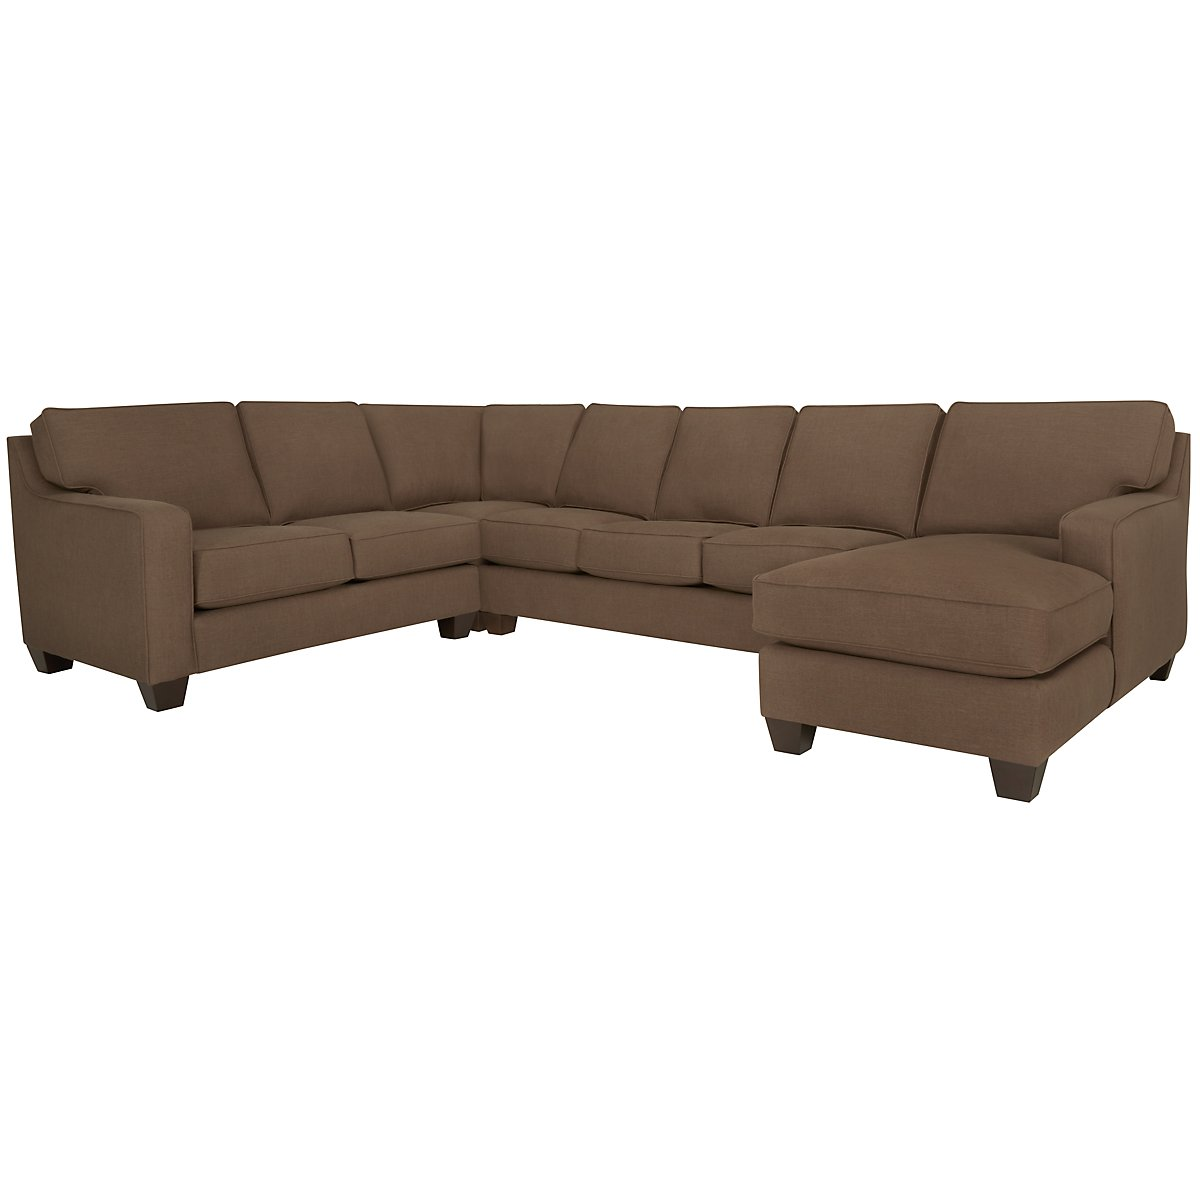 City furniture york dk brown fabric right chaise for Brown sectional with chaise